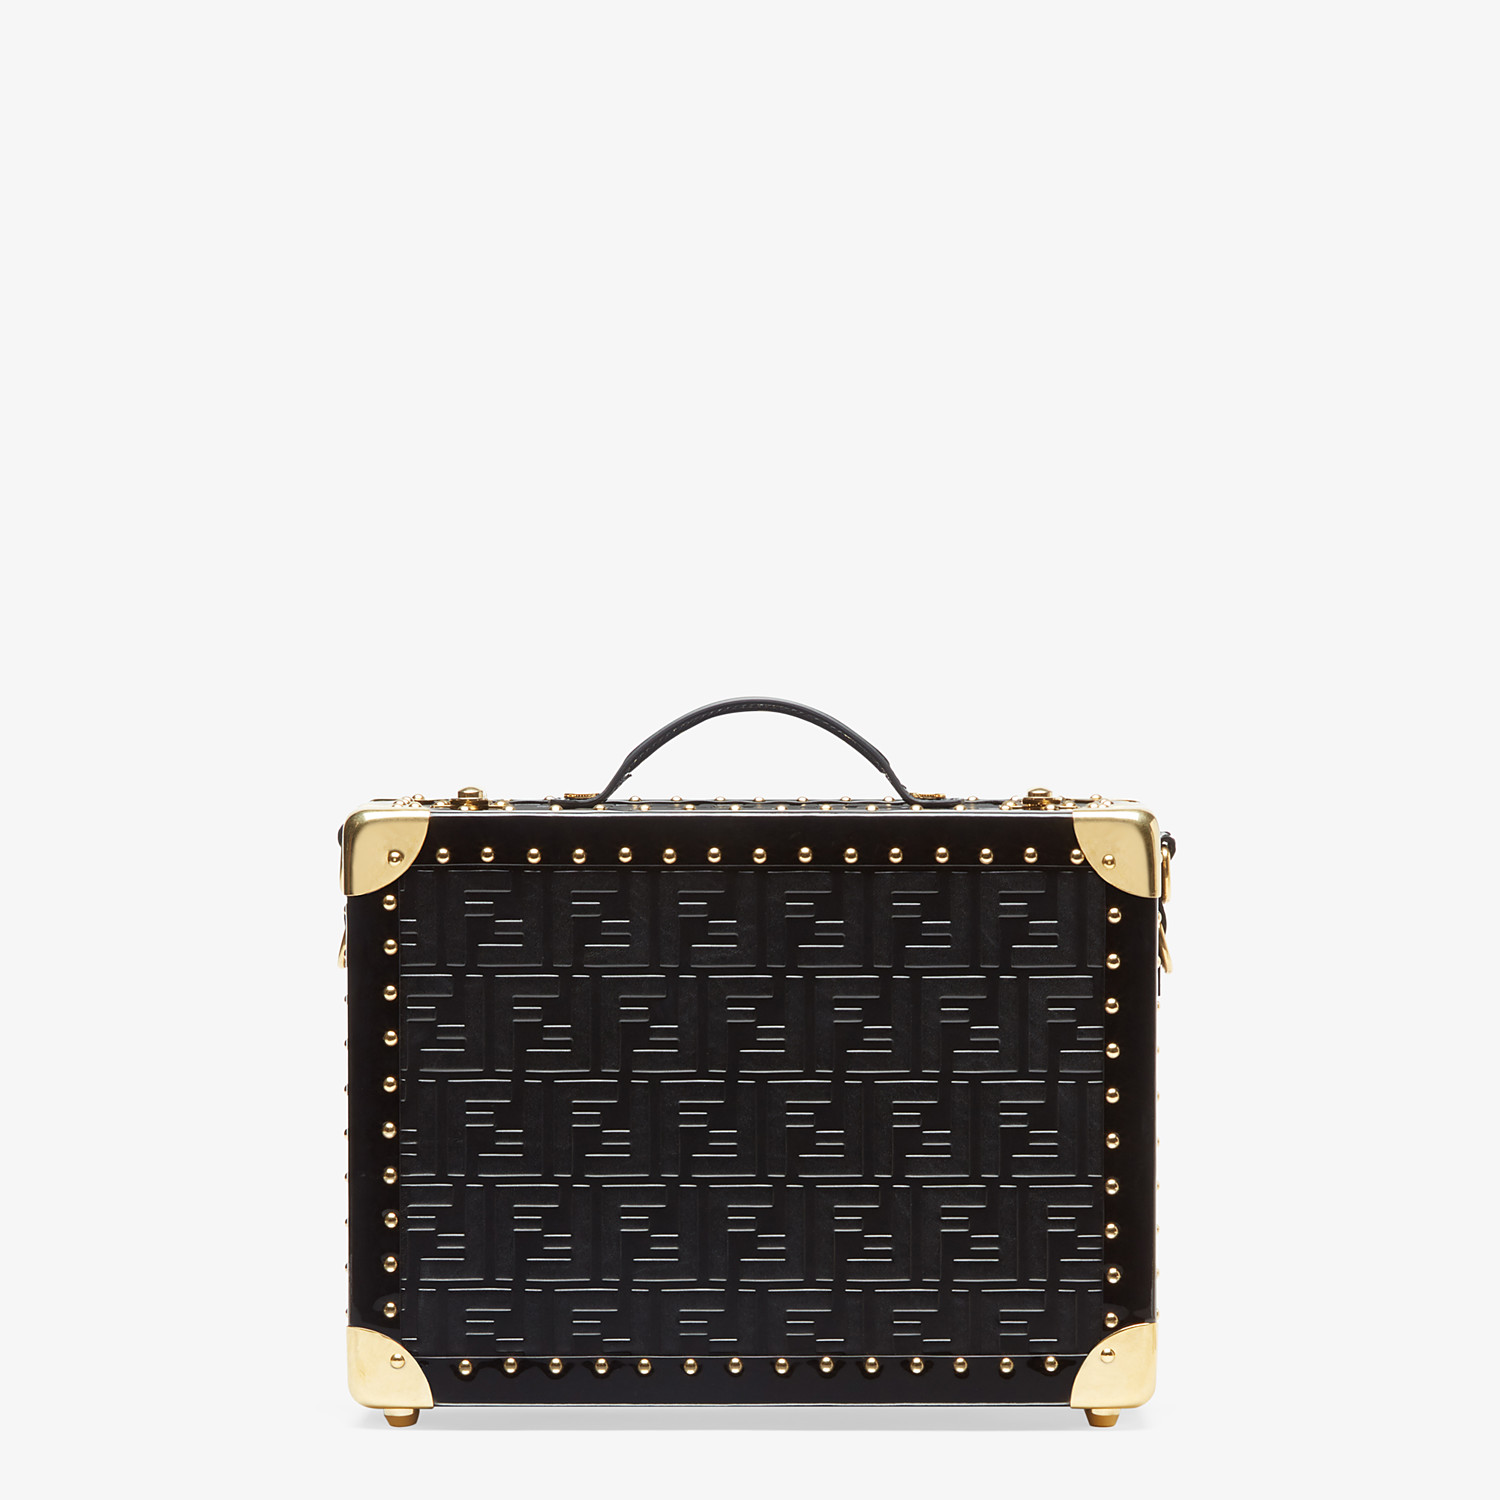 FENDI SMALL TRAVEL BAG - Black leather suitcase - view 3 detail